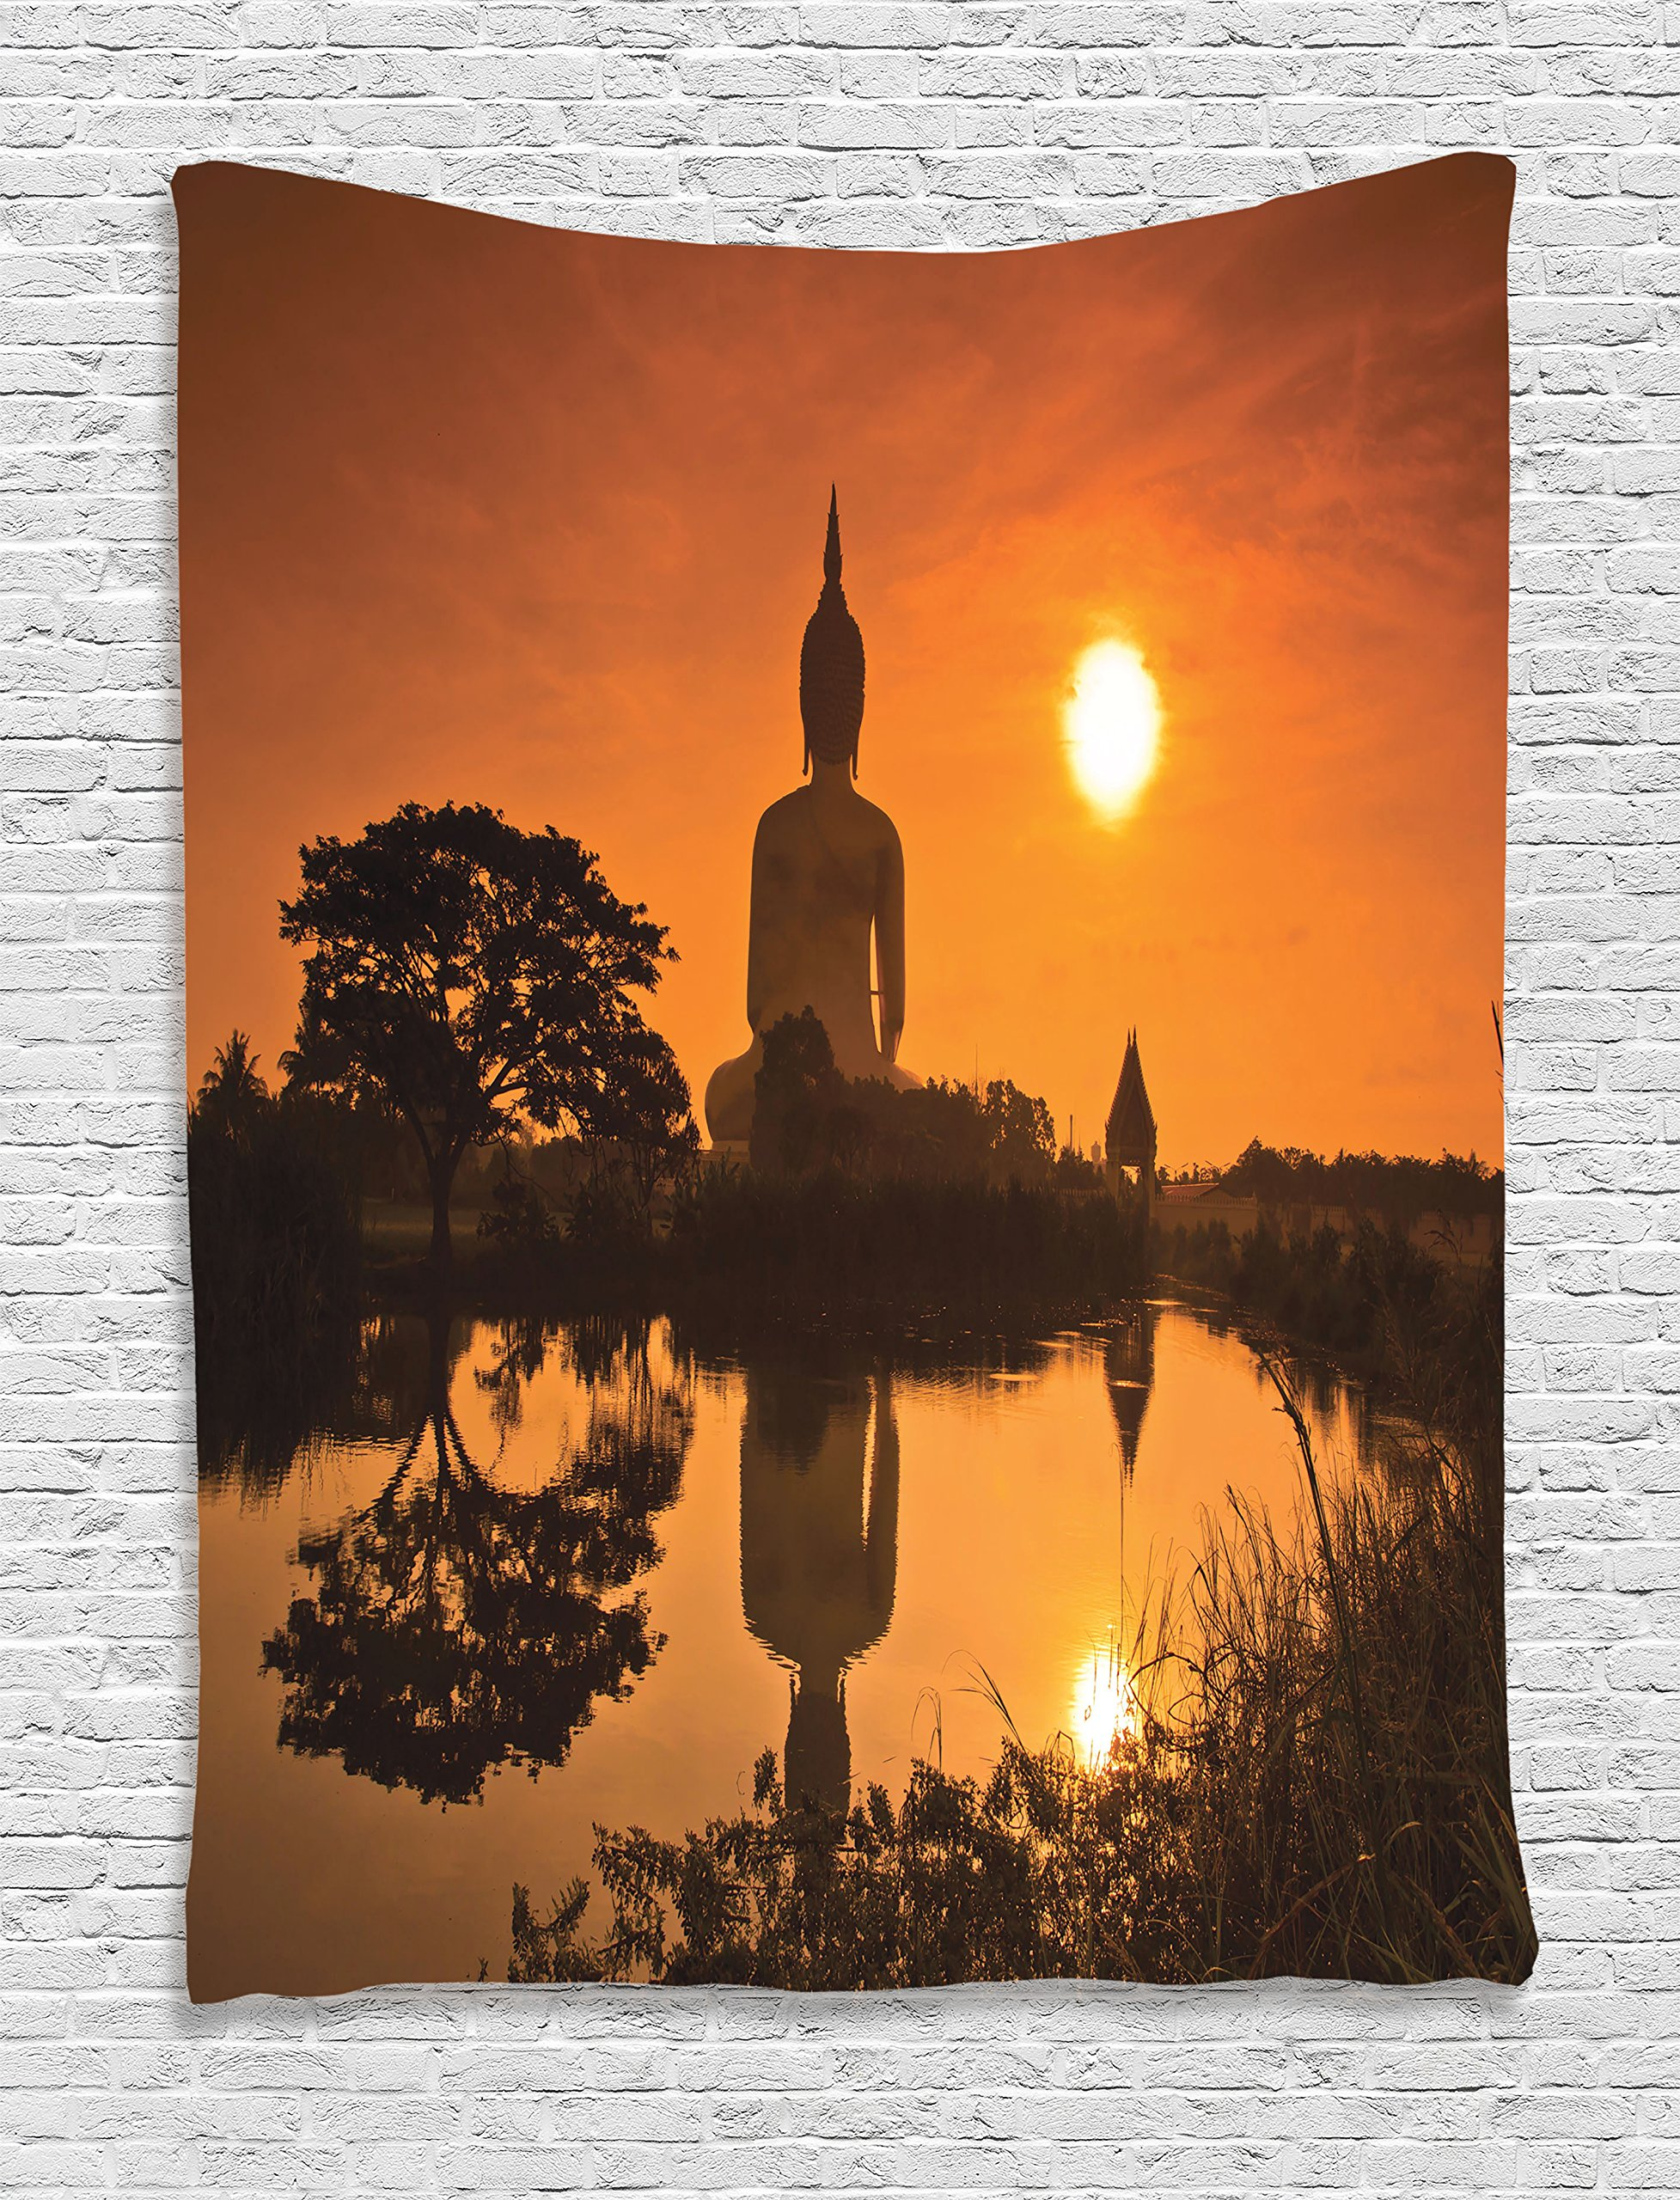 Ambesonne Orange Tapestry Yoga Decor, Big Giant Religious Statue by The River at Sunset Thai Asian Culture Scene Yin Yang Print, Bedroom Living Room Dorm Wall Hanging Tapestry, Burnt Orange by Ambesonne